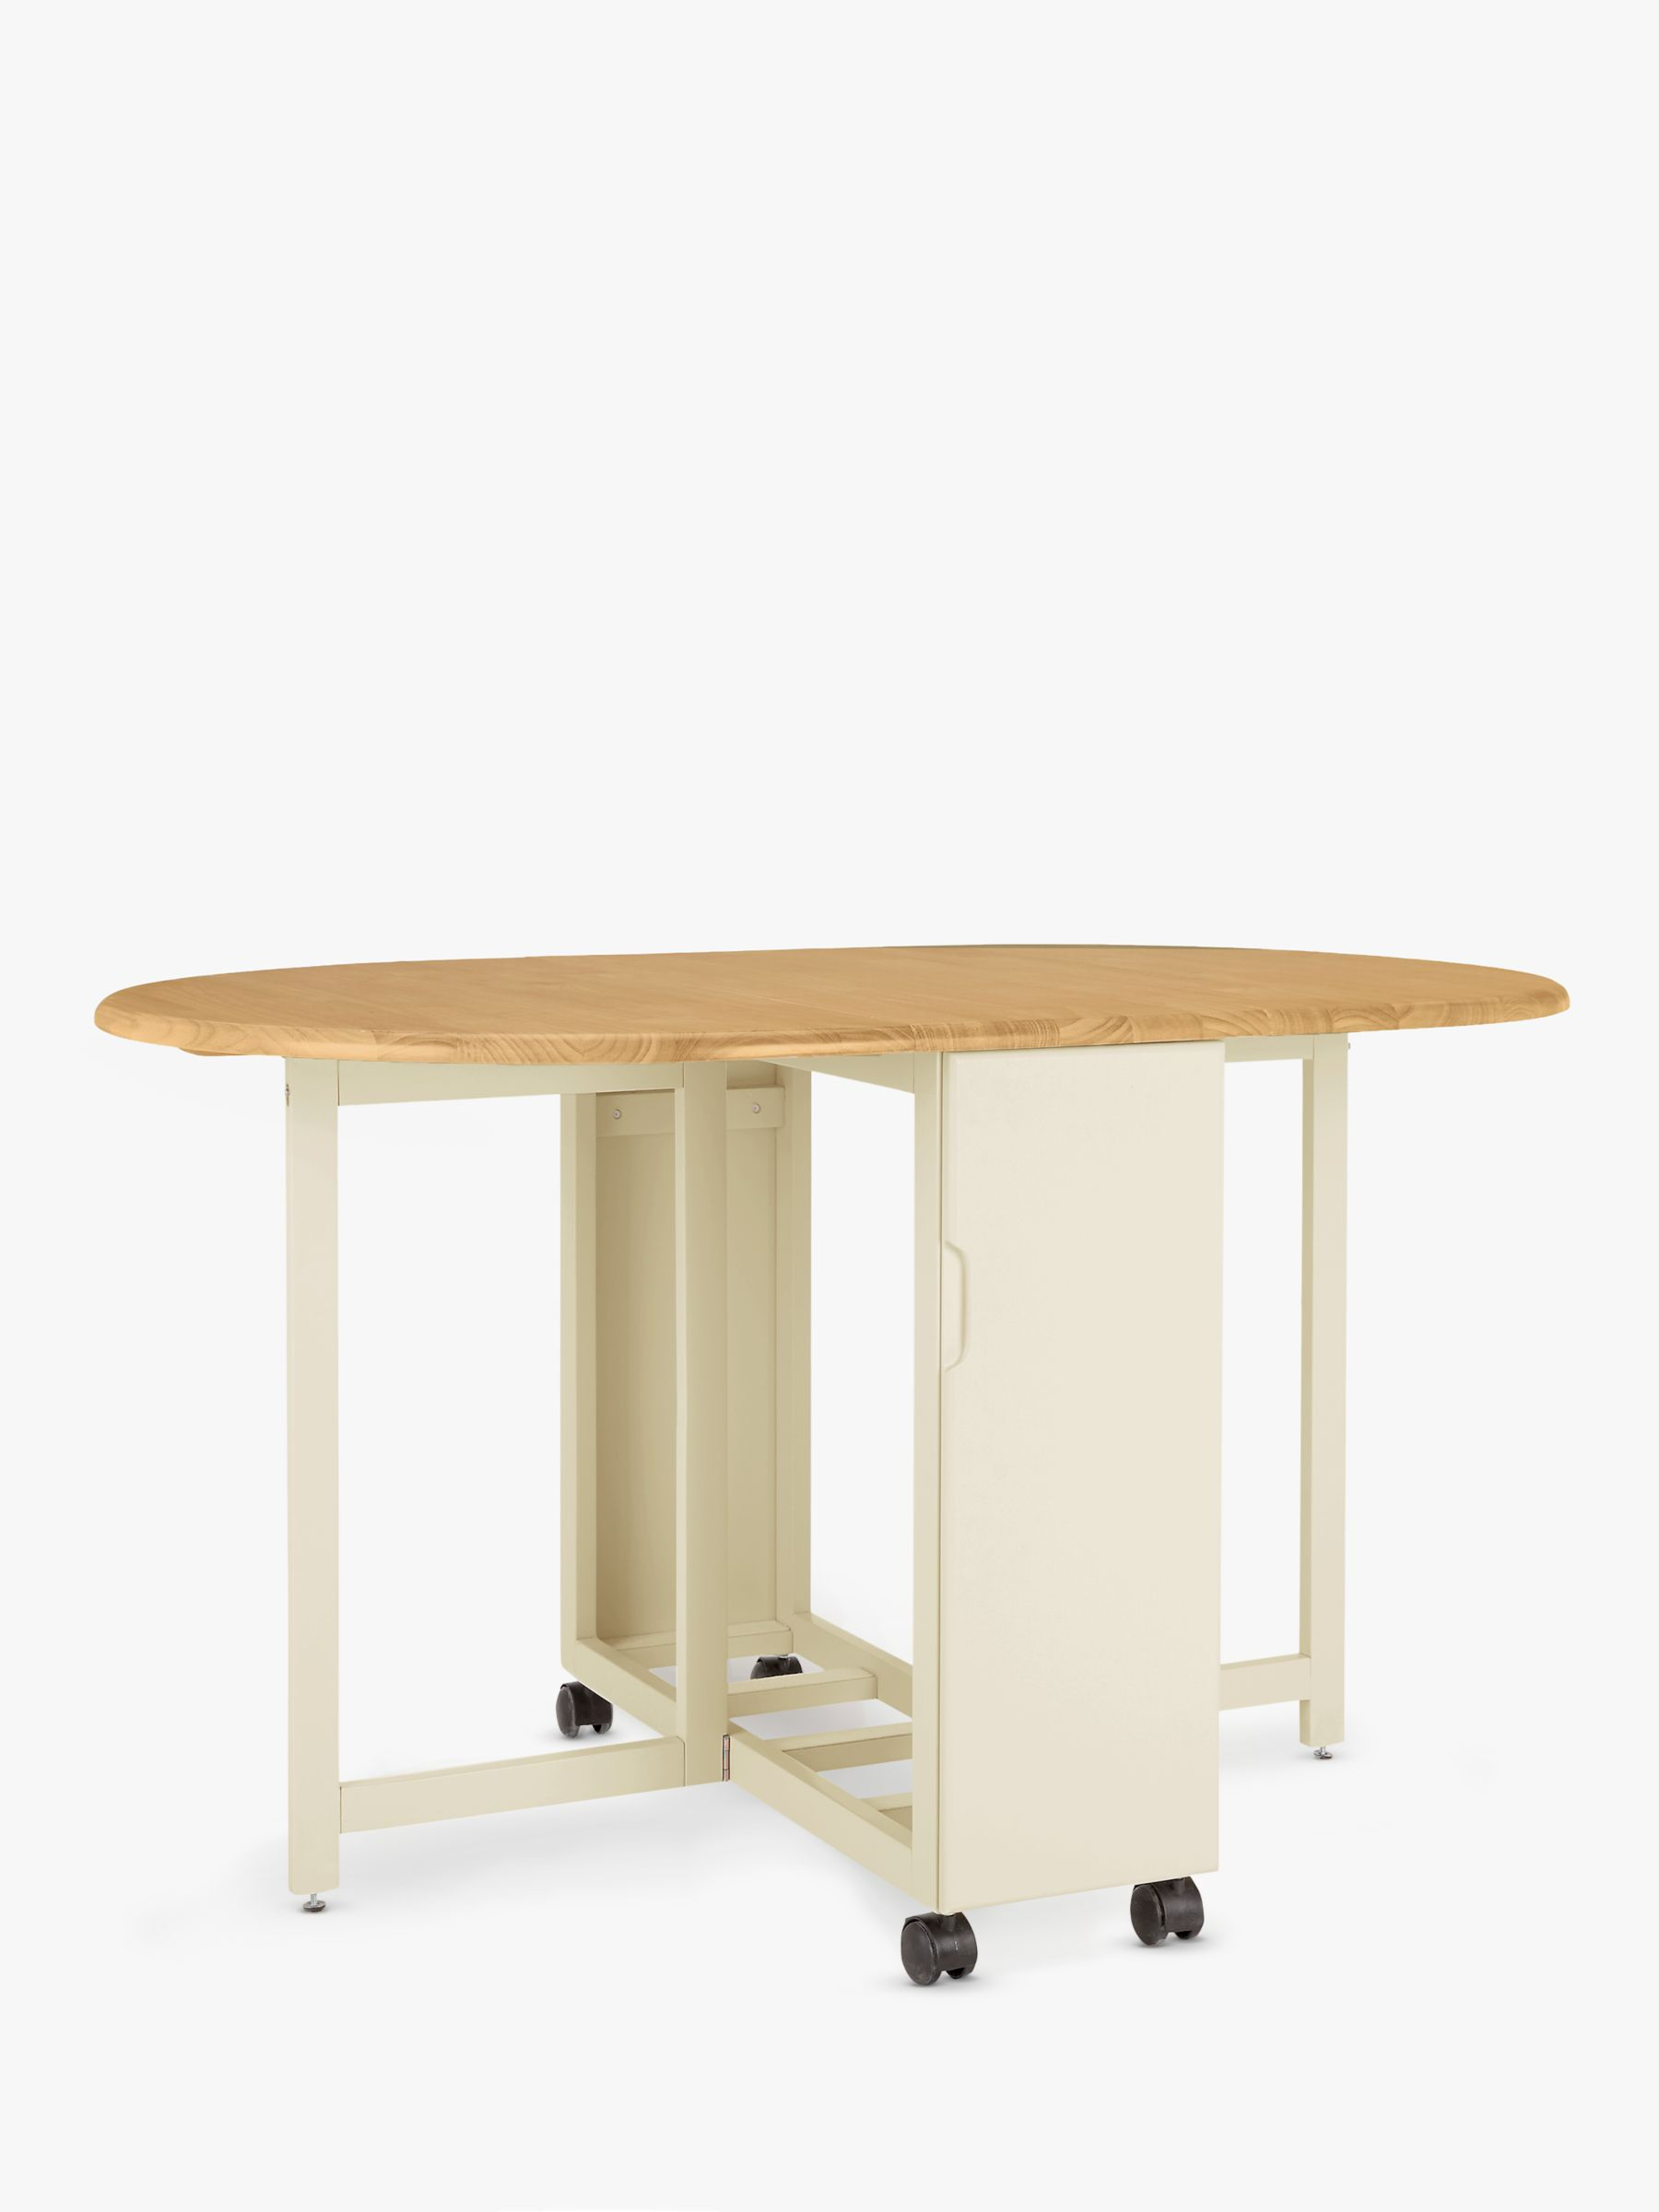 rubberwood butterfly table with 4 chairs swivel under £100 john lewis adler drop leaf folding dining